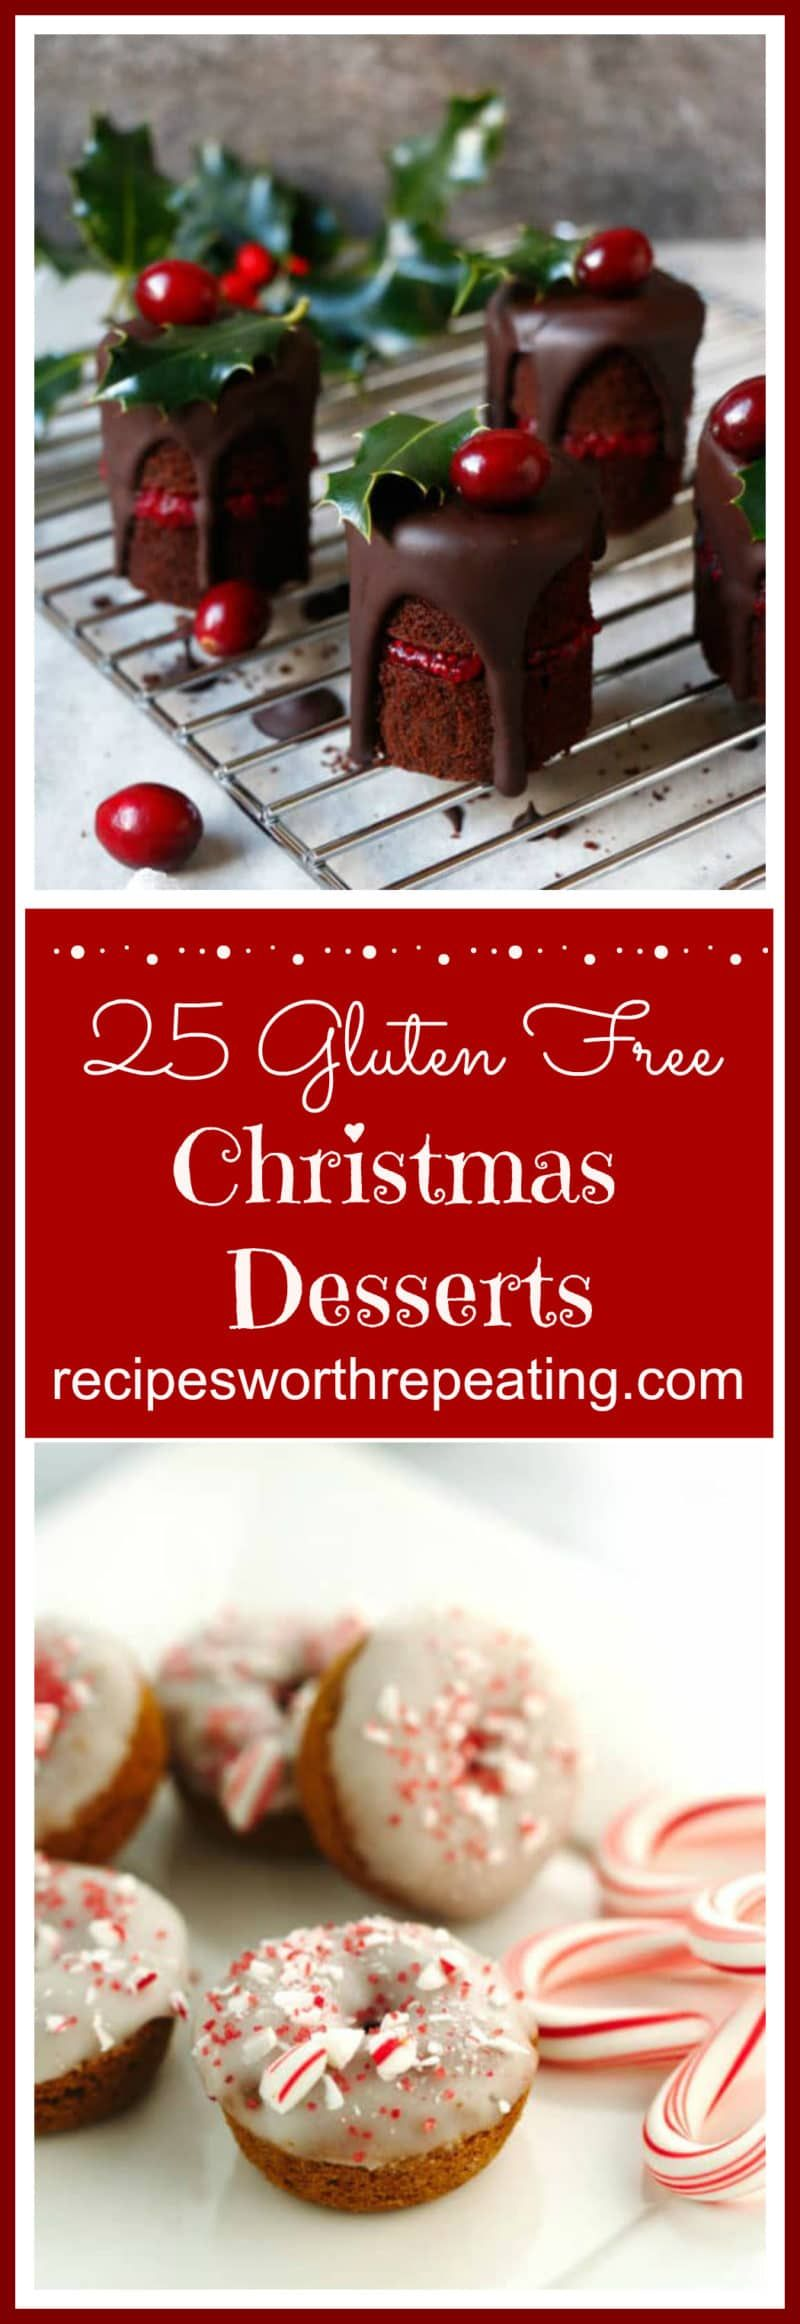 25 Gluten Free Christmas Desserts is part of Christmas dessert Healthy - 25 Gluten Free Christmas Desserts that are guaranteed crowd pleasers for the holidays! Cookies, Brownies, Cake, Apple Crisps, meringues, truffles and fudge!